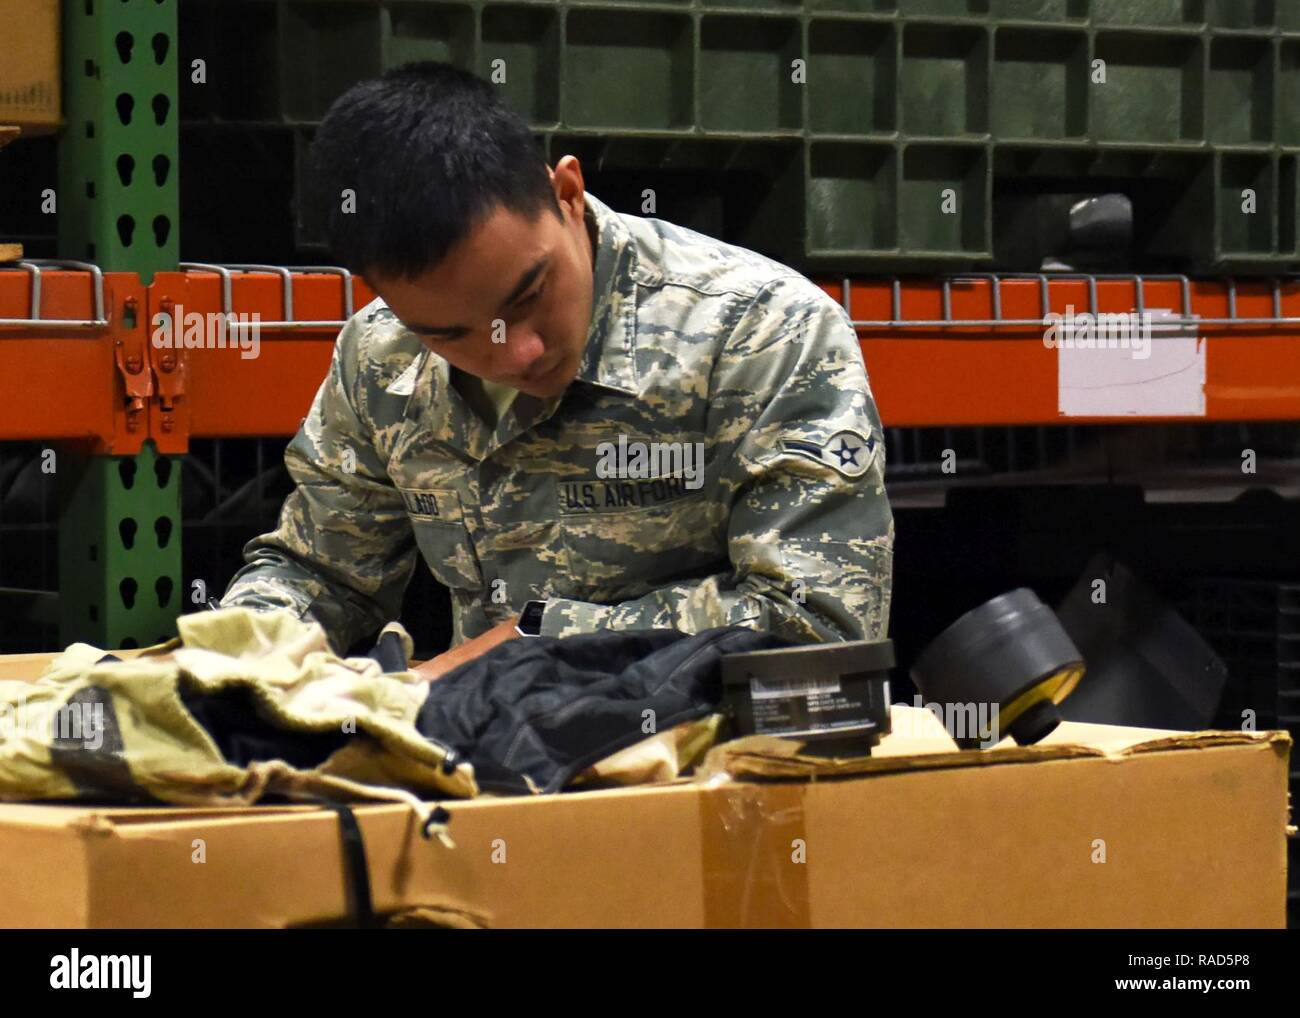 U.S. Air Force Airman Joerimer Collado, an individual protective equipment (IPE) specialist assigned to the 509th Logistics Readiness Squadron (LRS), creates an inventory list for disposition items at Whiteman Air Force Base, Mo., Jan. 17, 2017. When items are no longer needed in the IPE shop they are put into crates to be transferred to another facility. - Stock Image